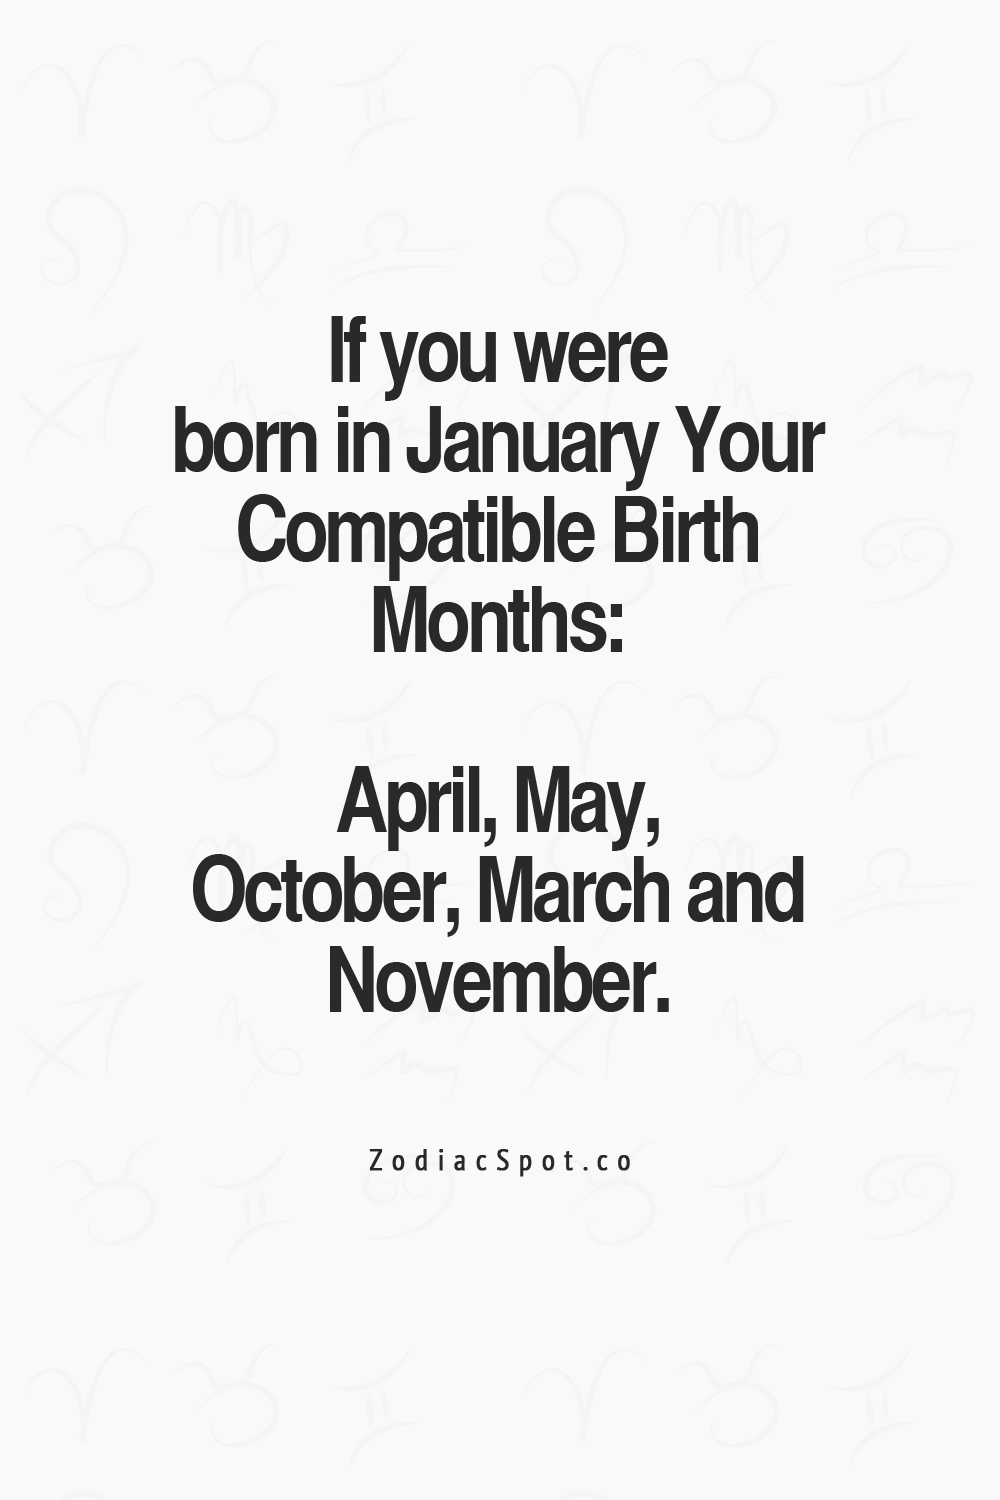 Find your compatible birth month here